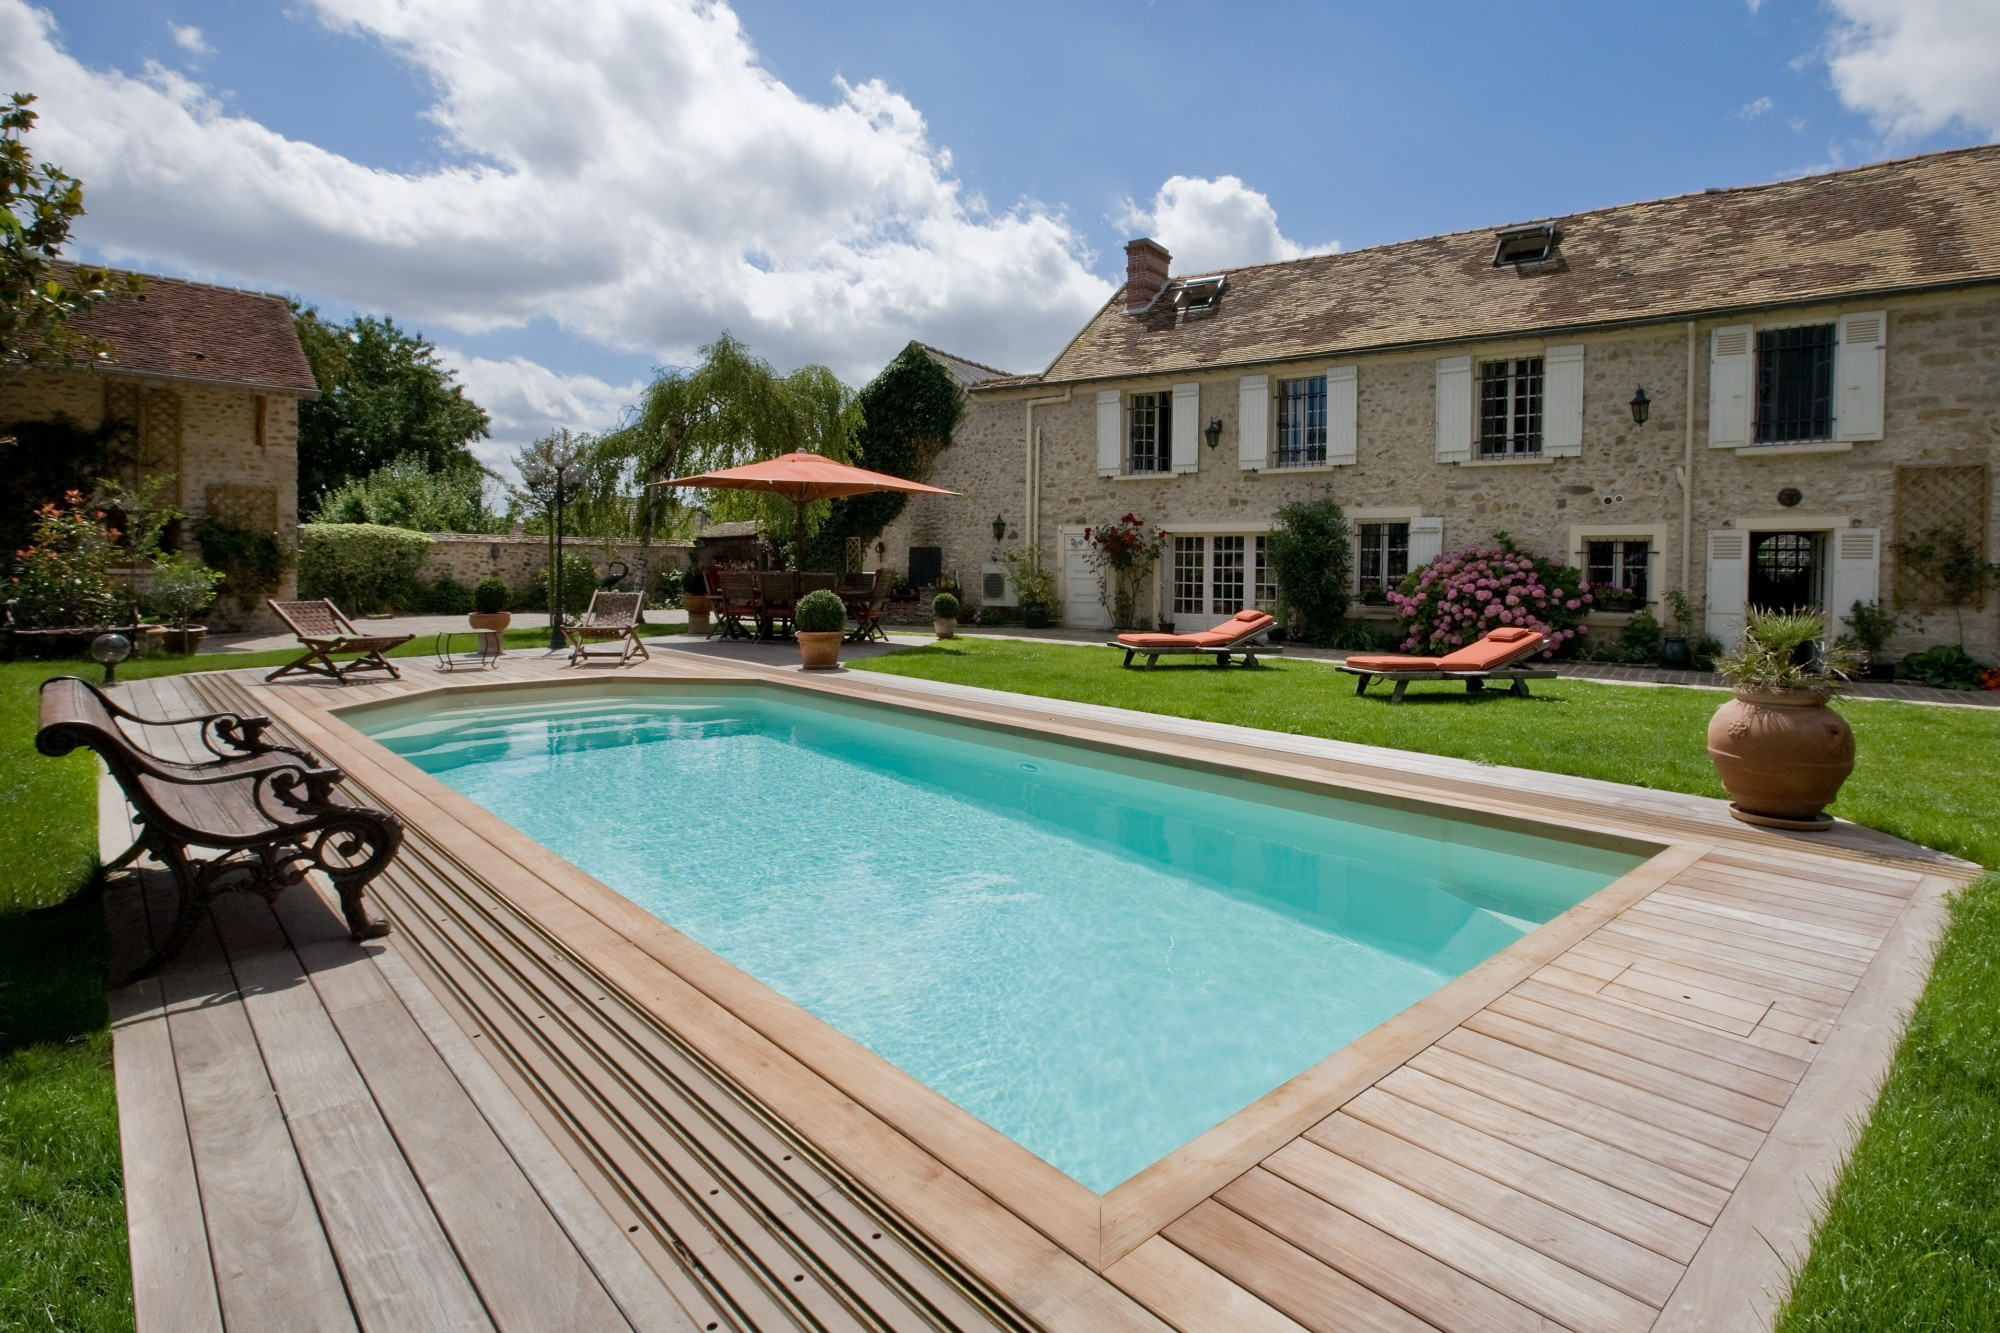 Piscine guide choix de solution co t et devis en ligne for Cout construction piscine 10x5